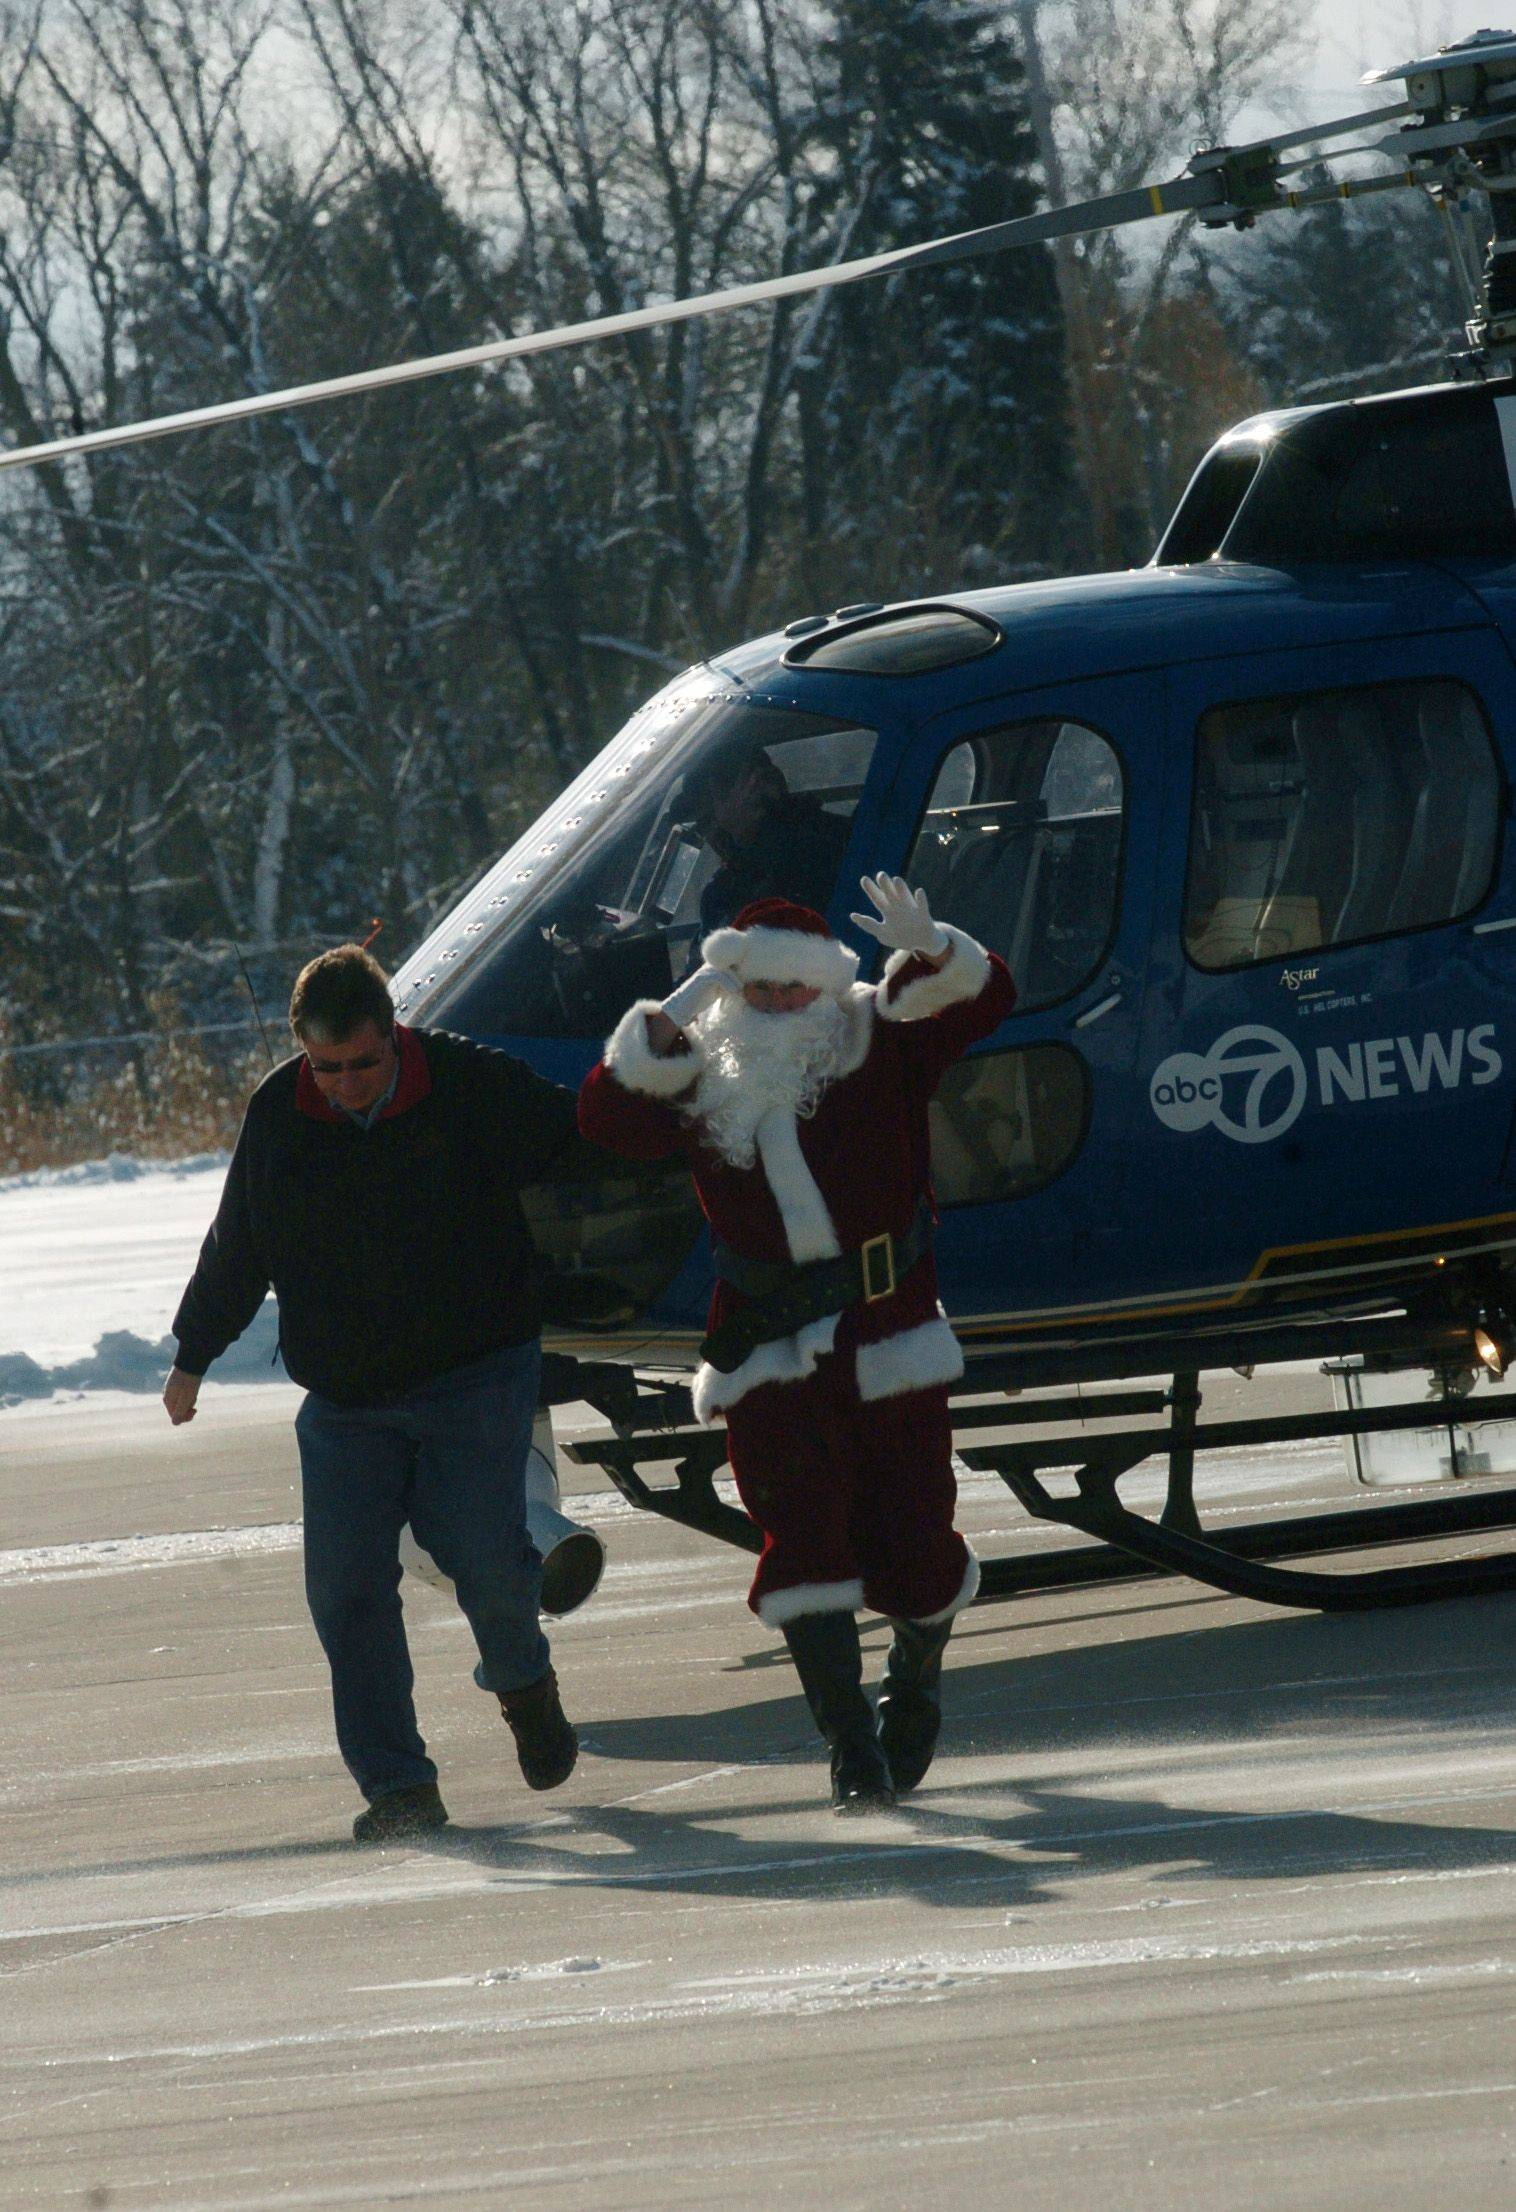 Santa waves to the families waiting for him at Schaumburg Regional Airport's hangar Sunday morning after flying in on ABC 7's helicopter.